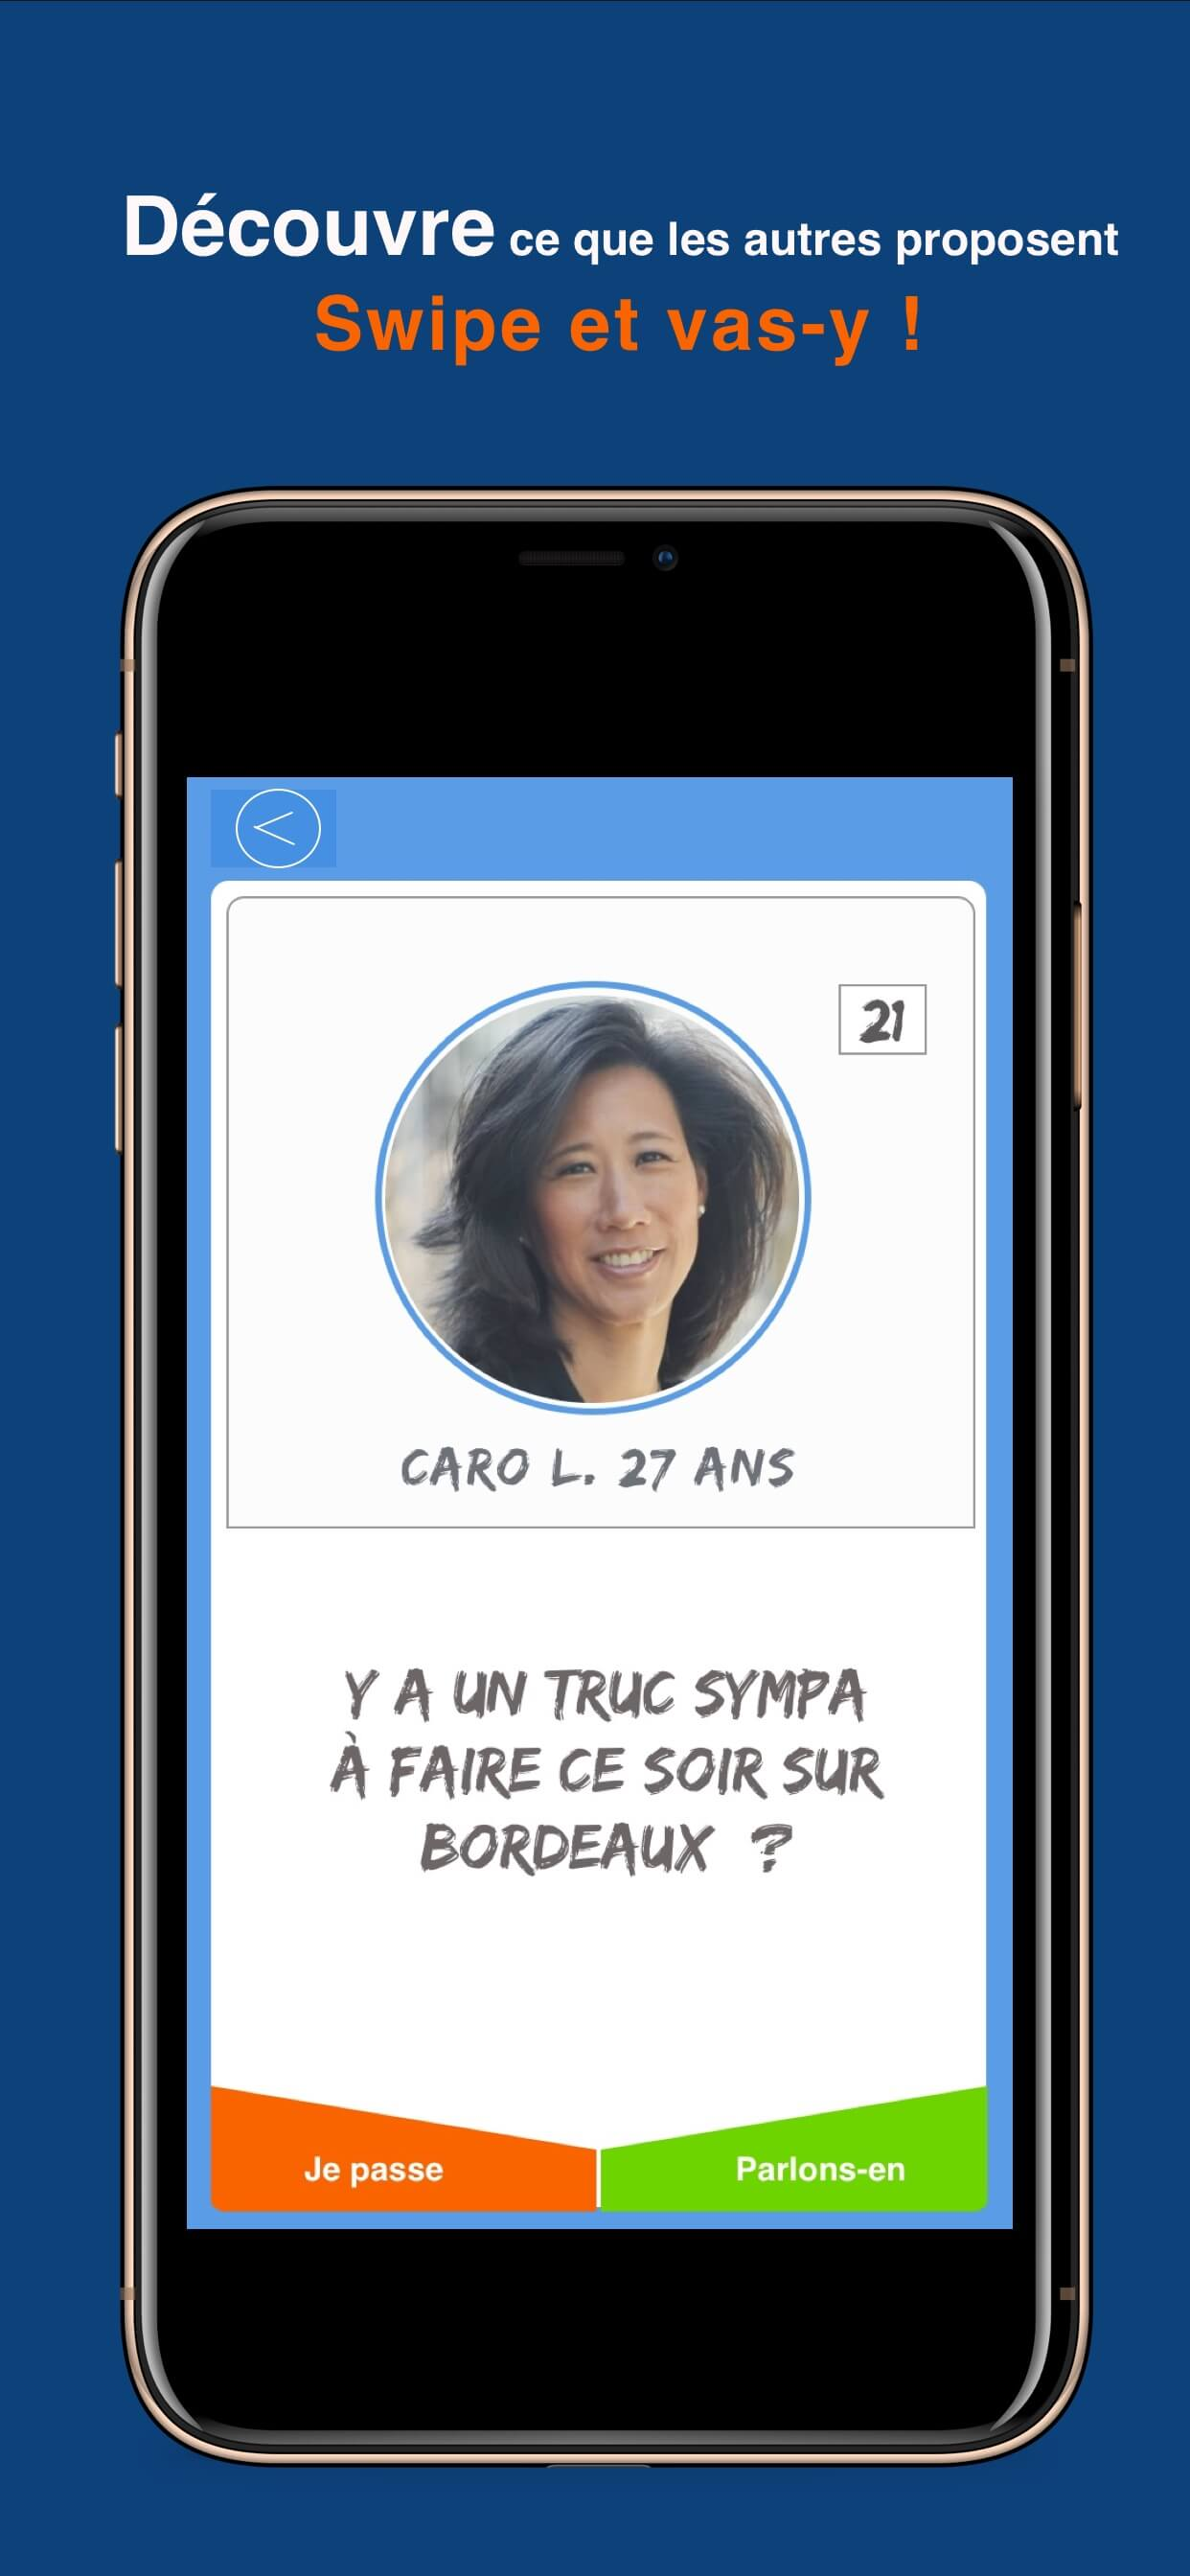 elyot-application-ios-iphone-freelance-bordeaux-jeremy-peltier-4